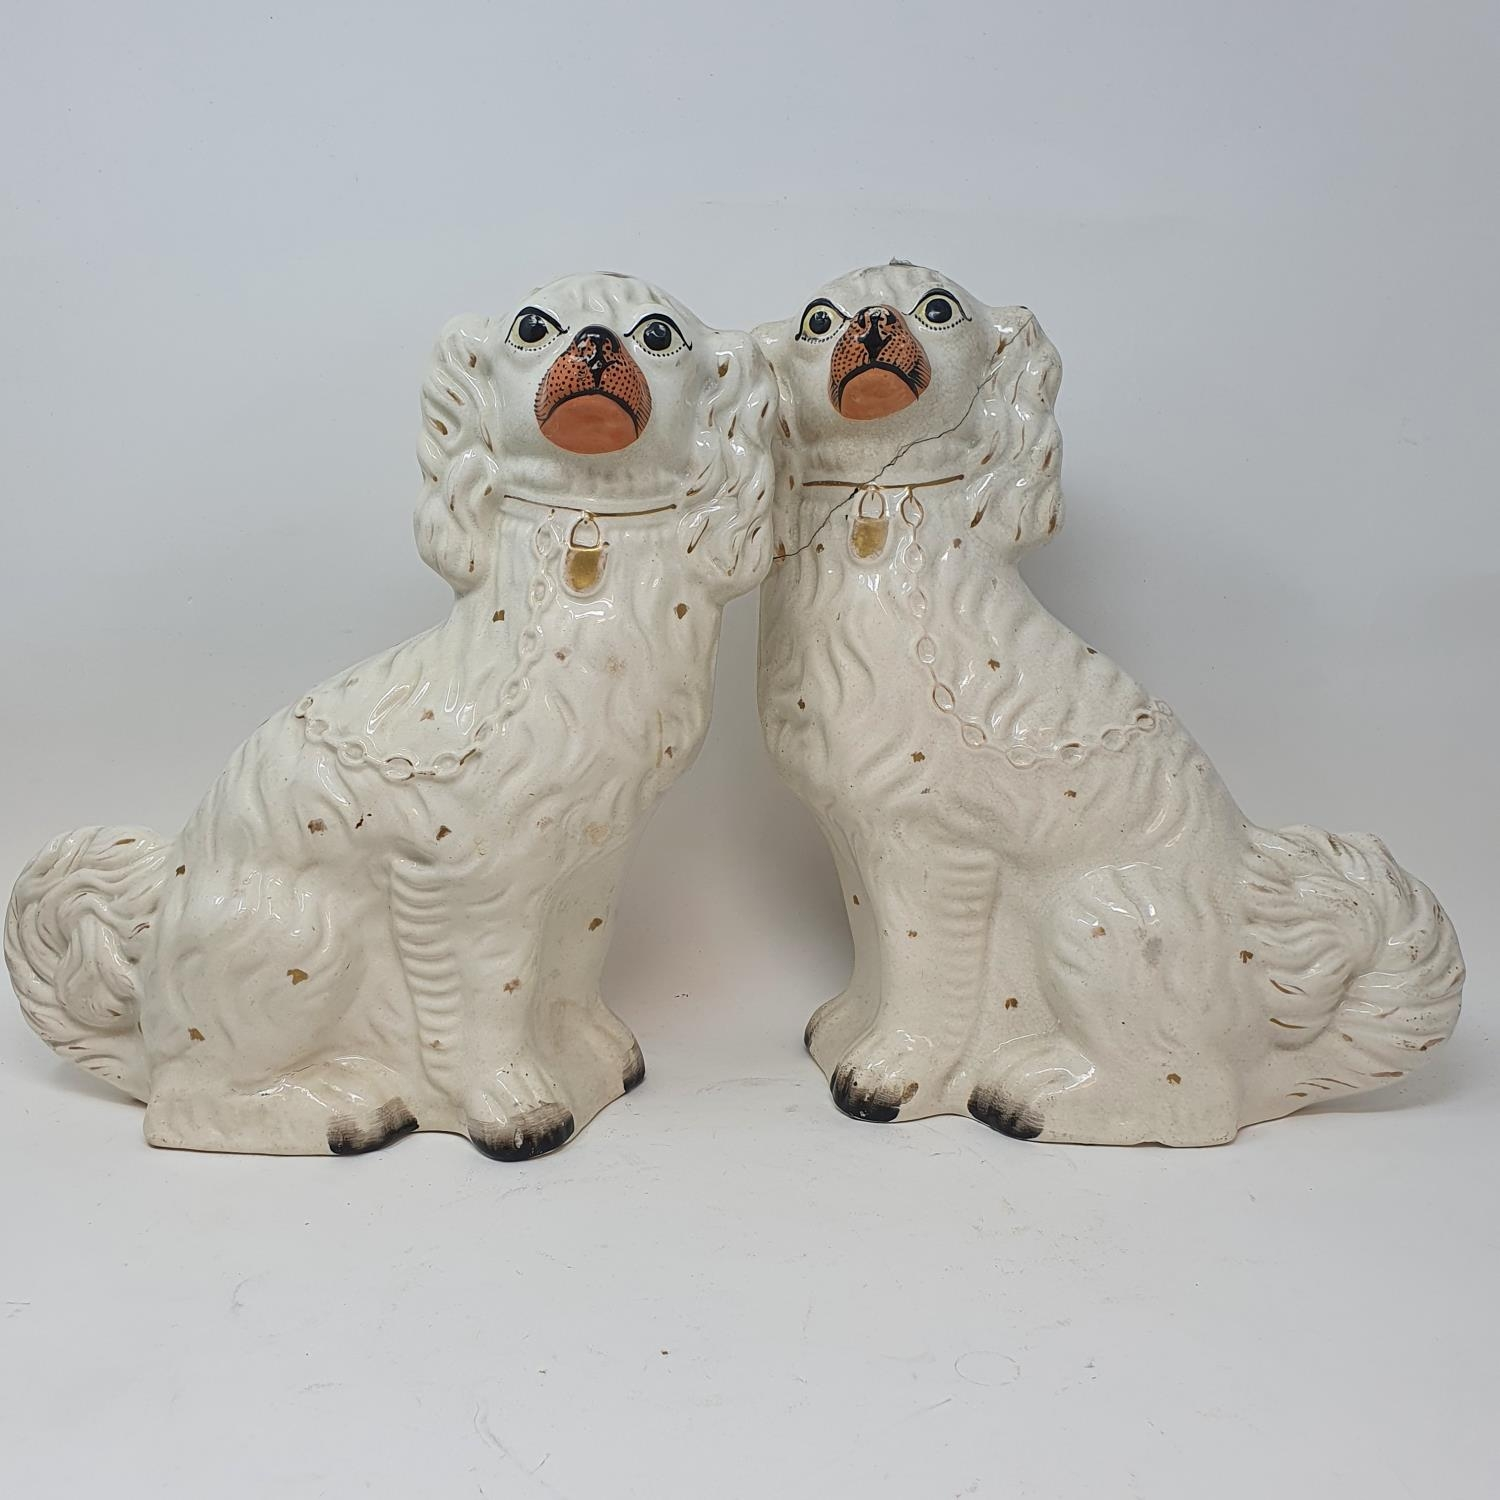 A pair of Staffordshire flat back spaniels, a Royal Doulton part dinner service, other ceramics - Image 3 of 15